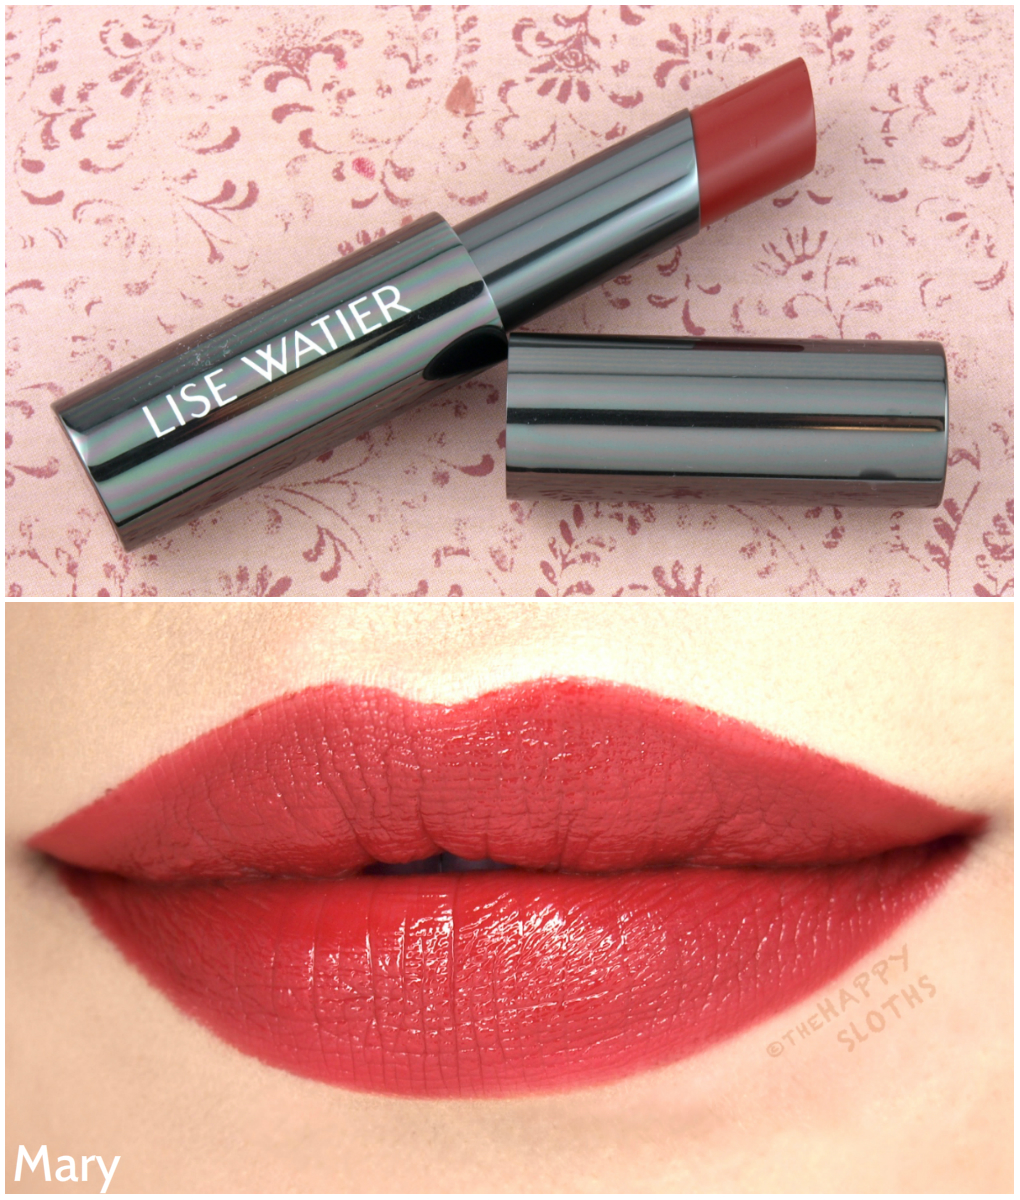 Lise Watier Rouge Intense Supreme Mary